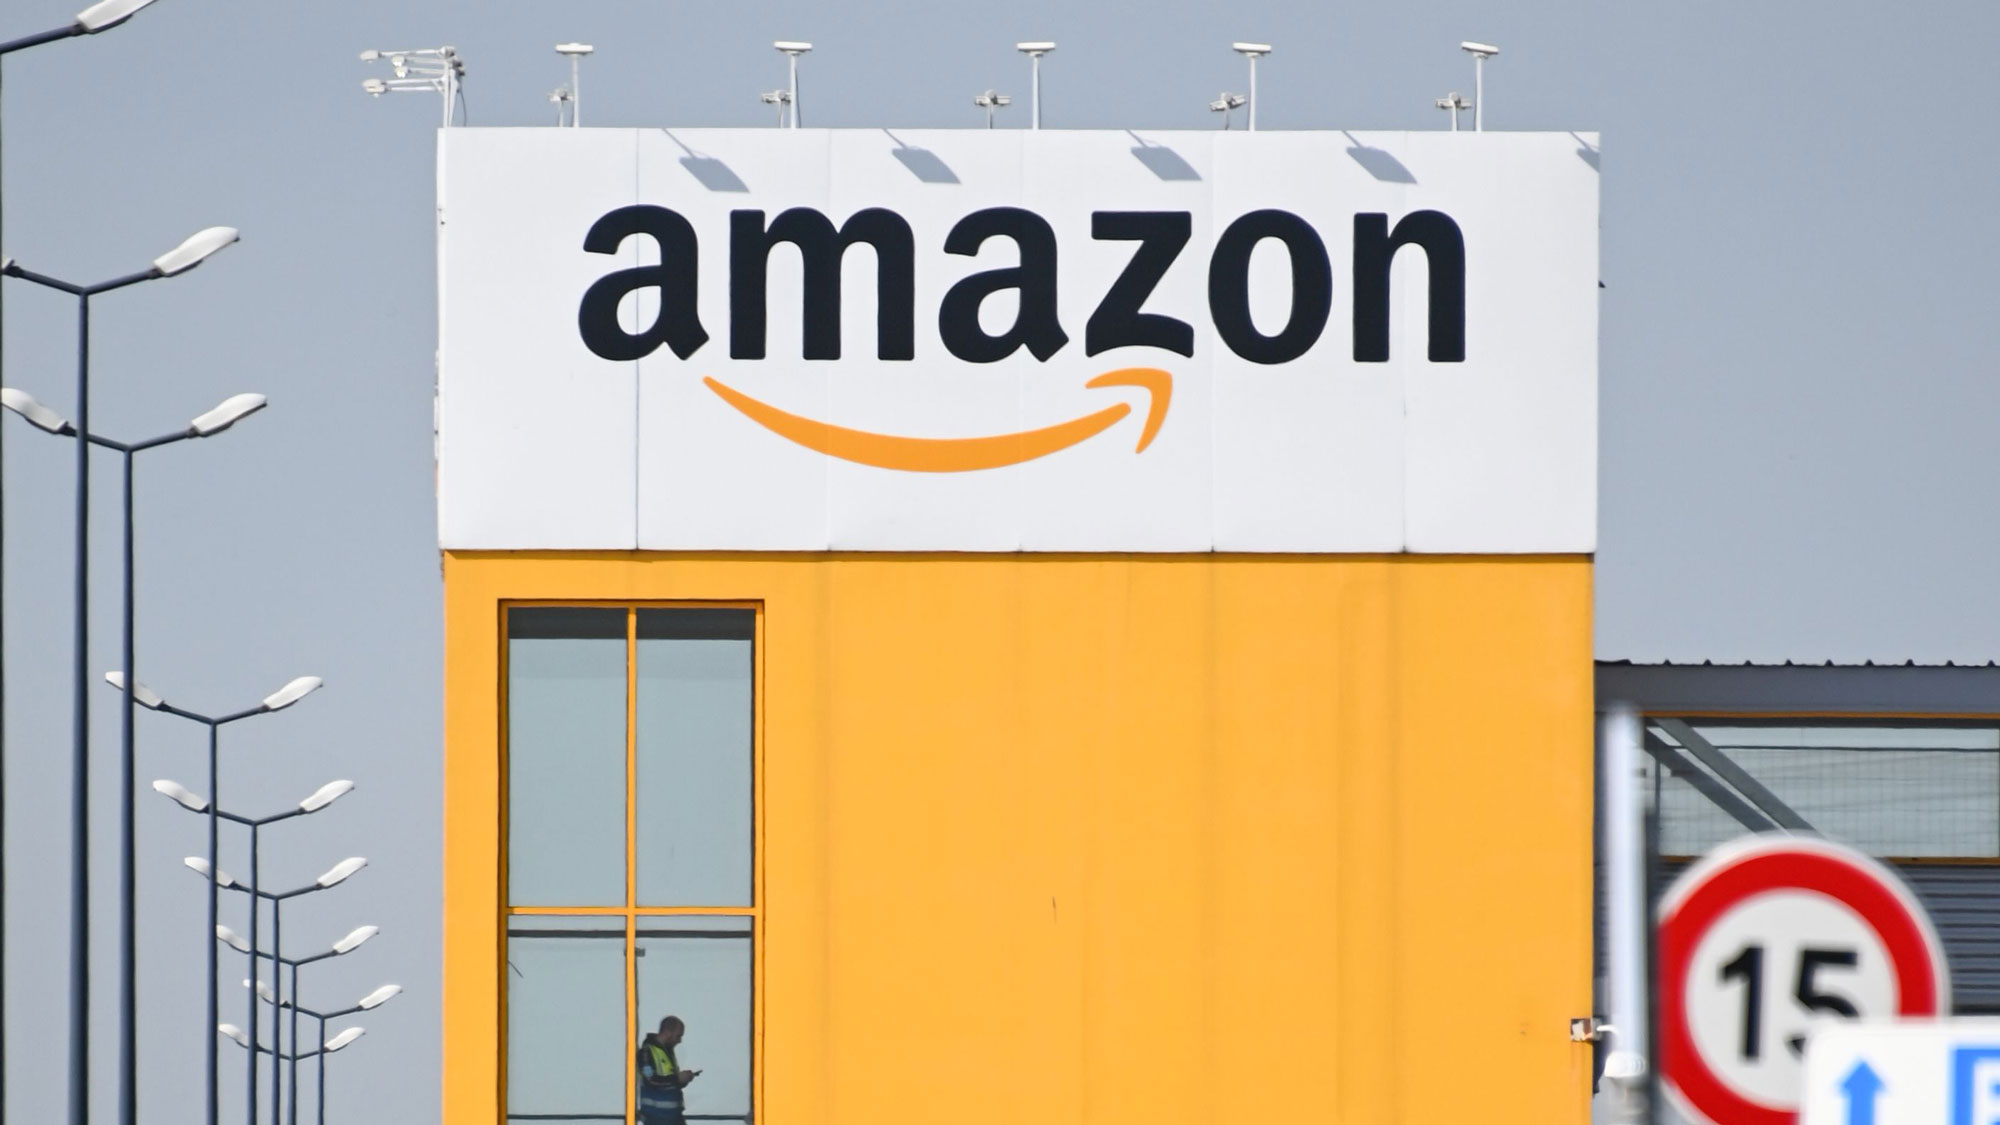 An Amazon employee is seen at the Amazon logistics center in Lauwin-Planque, France, on April 16.